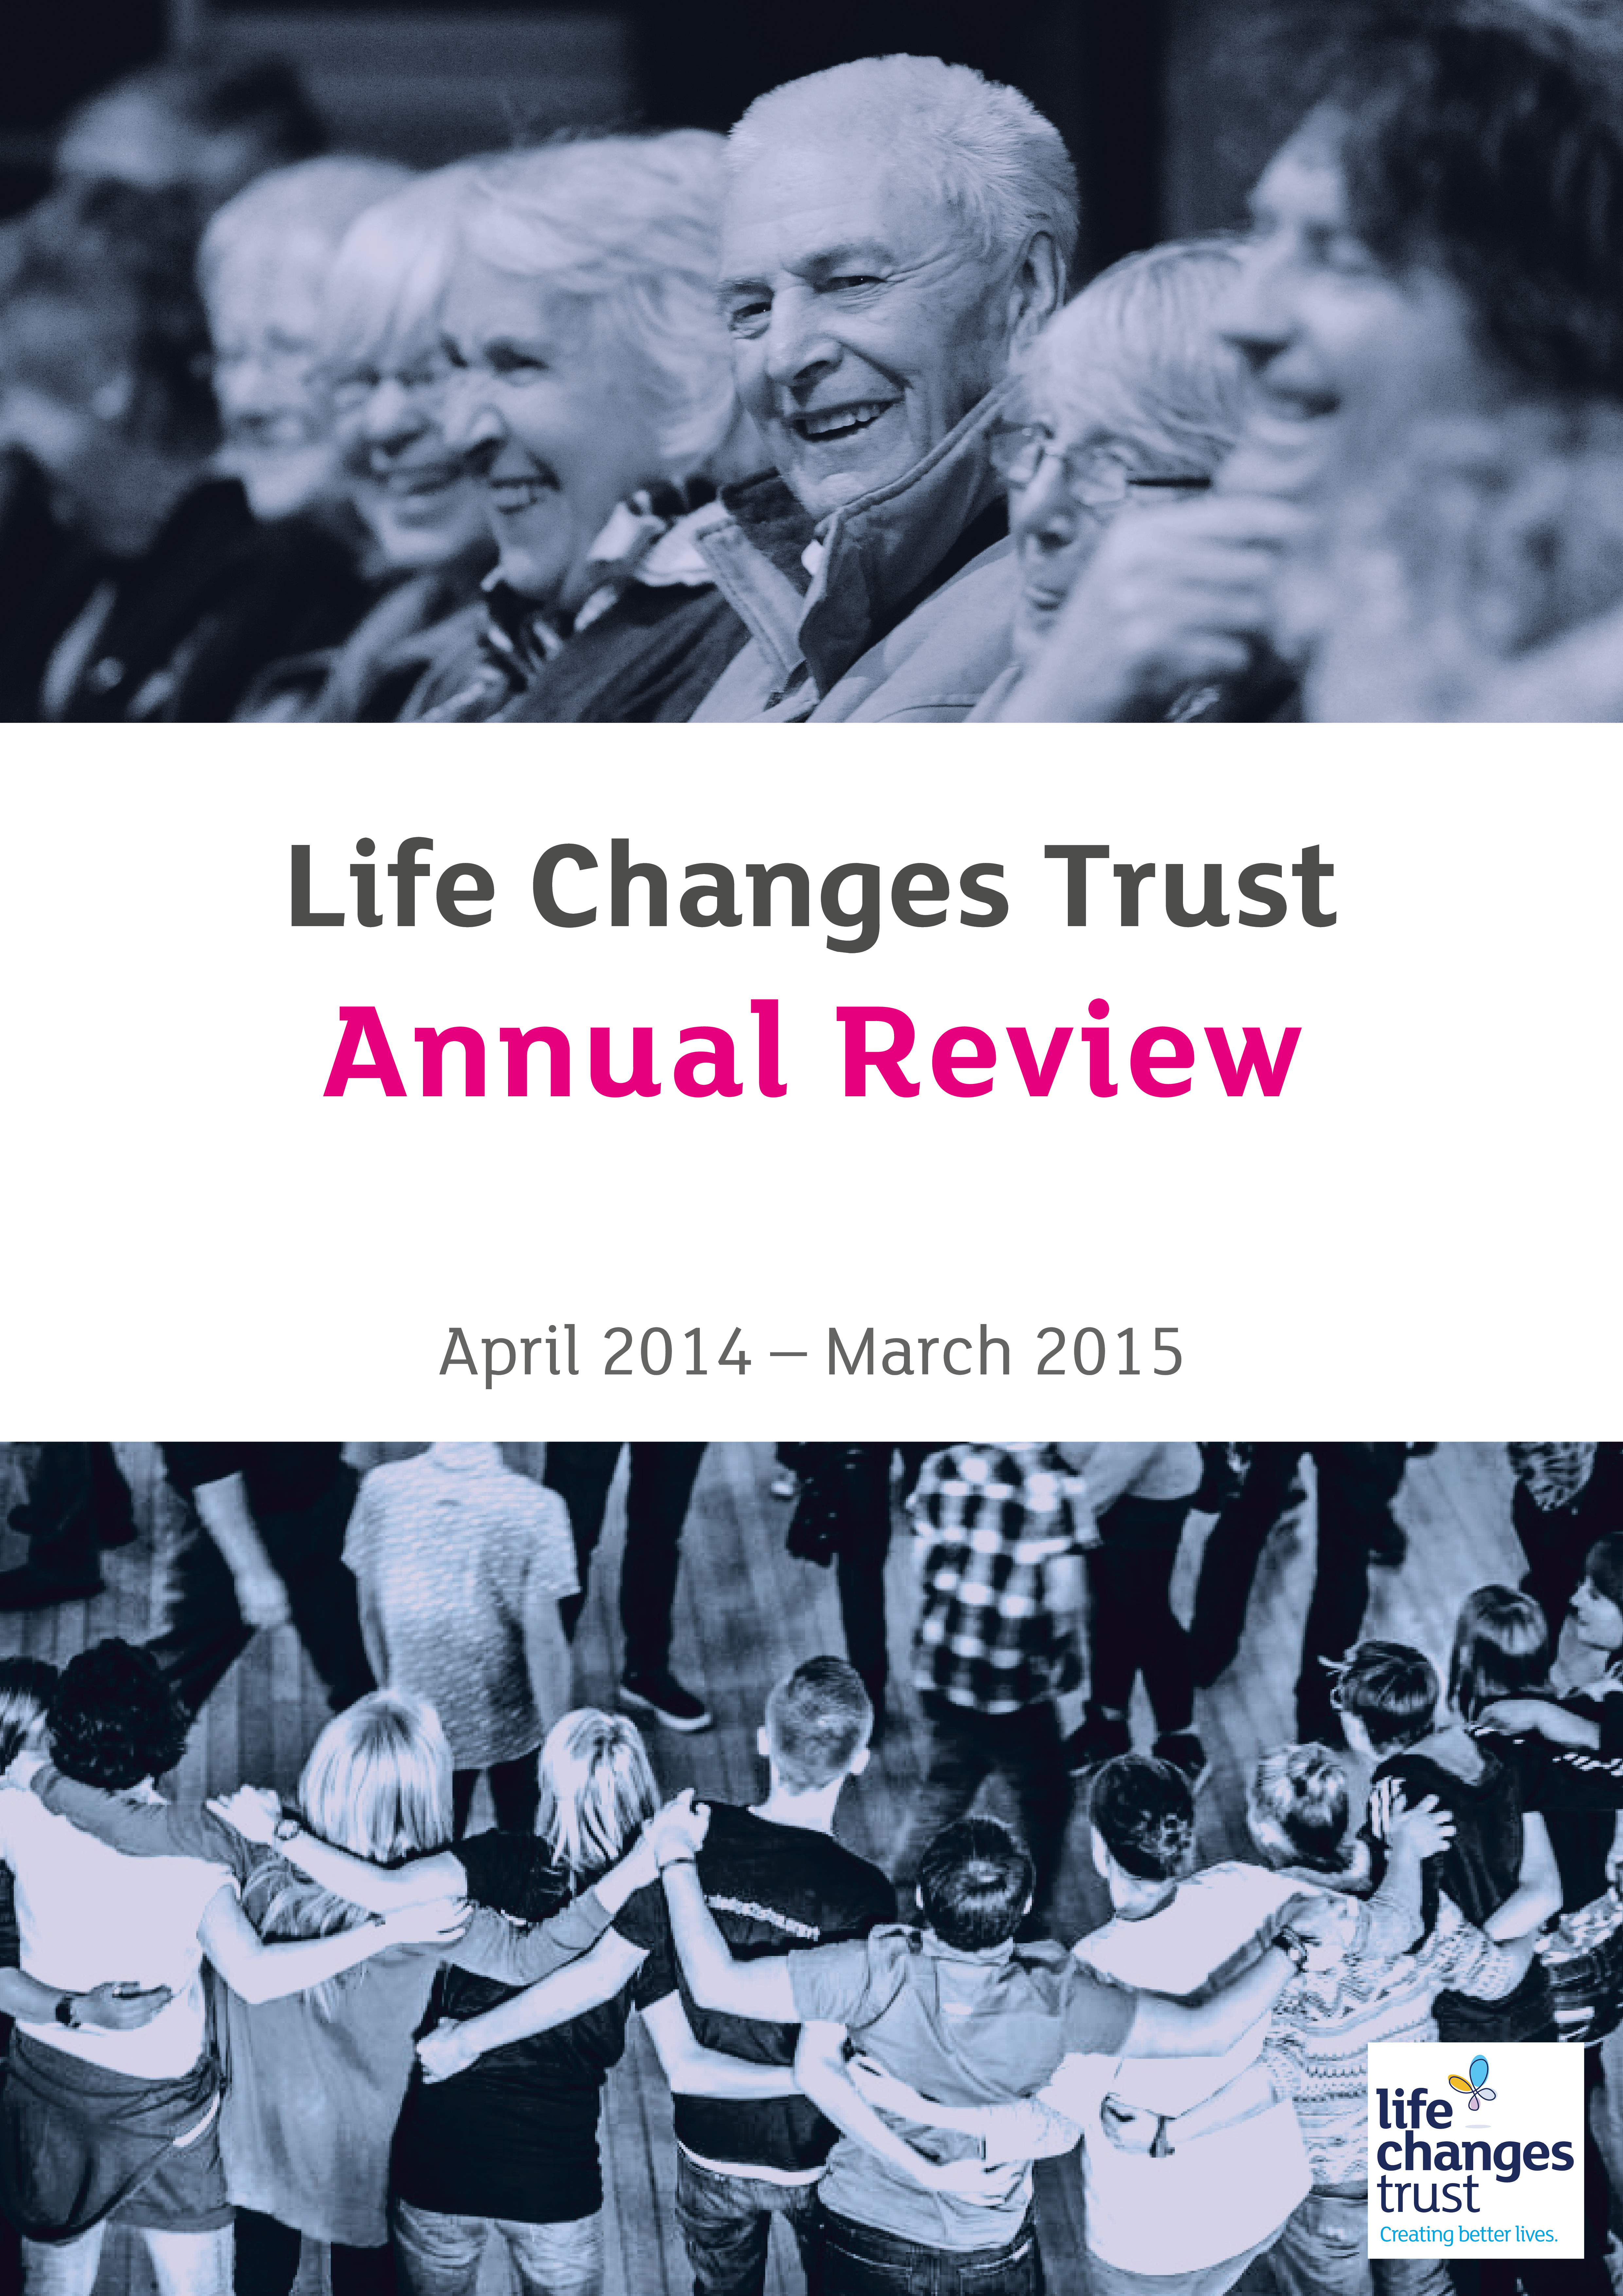 Life Changes Trust Annual Review (April 2014 - March 2015)